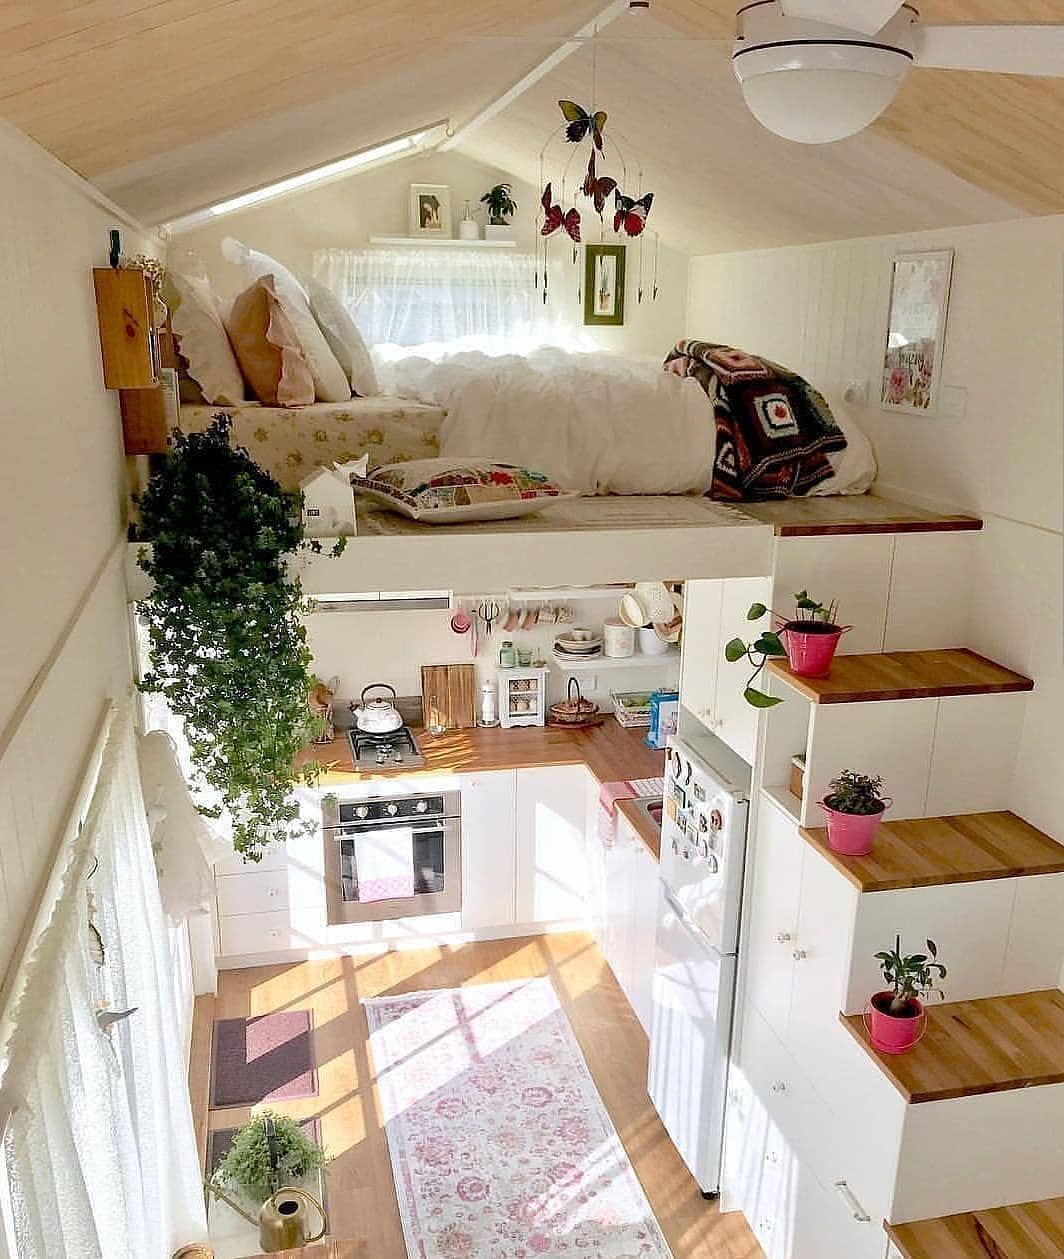 Interior Rumah Kecil Super Cute Tiny Home Could Totally Live Here Tinyhomescost